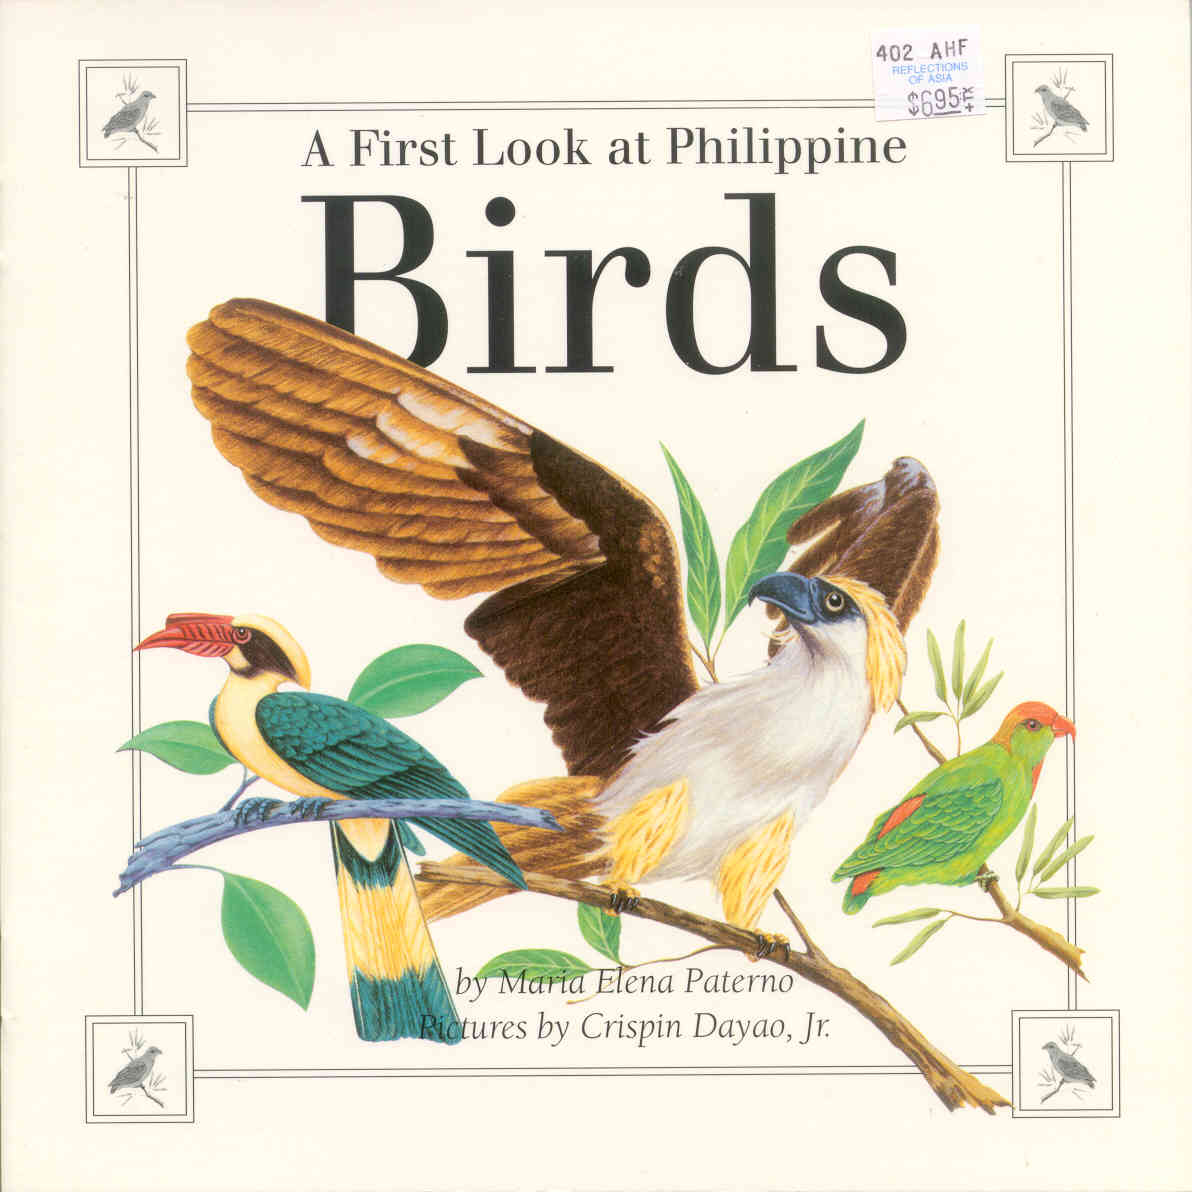 Book Cover Design Of Birds : First look